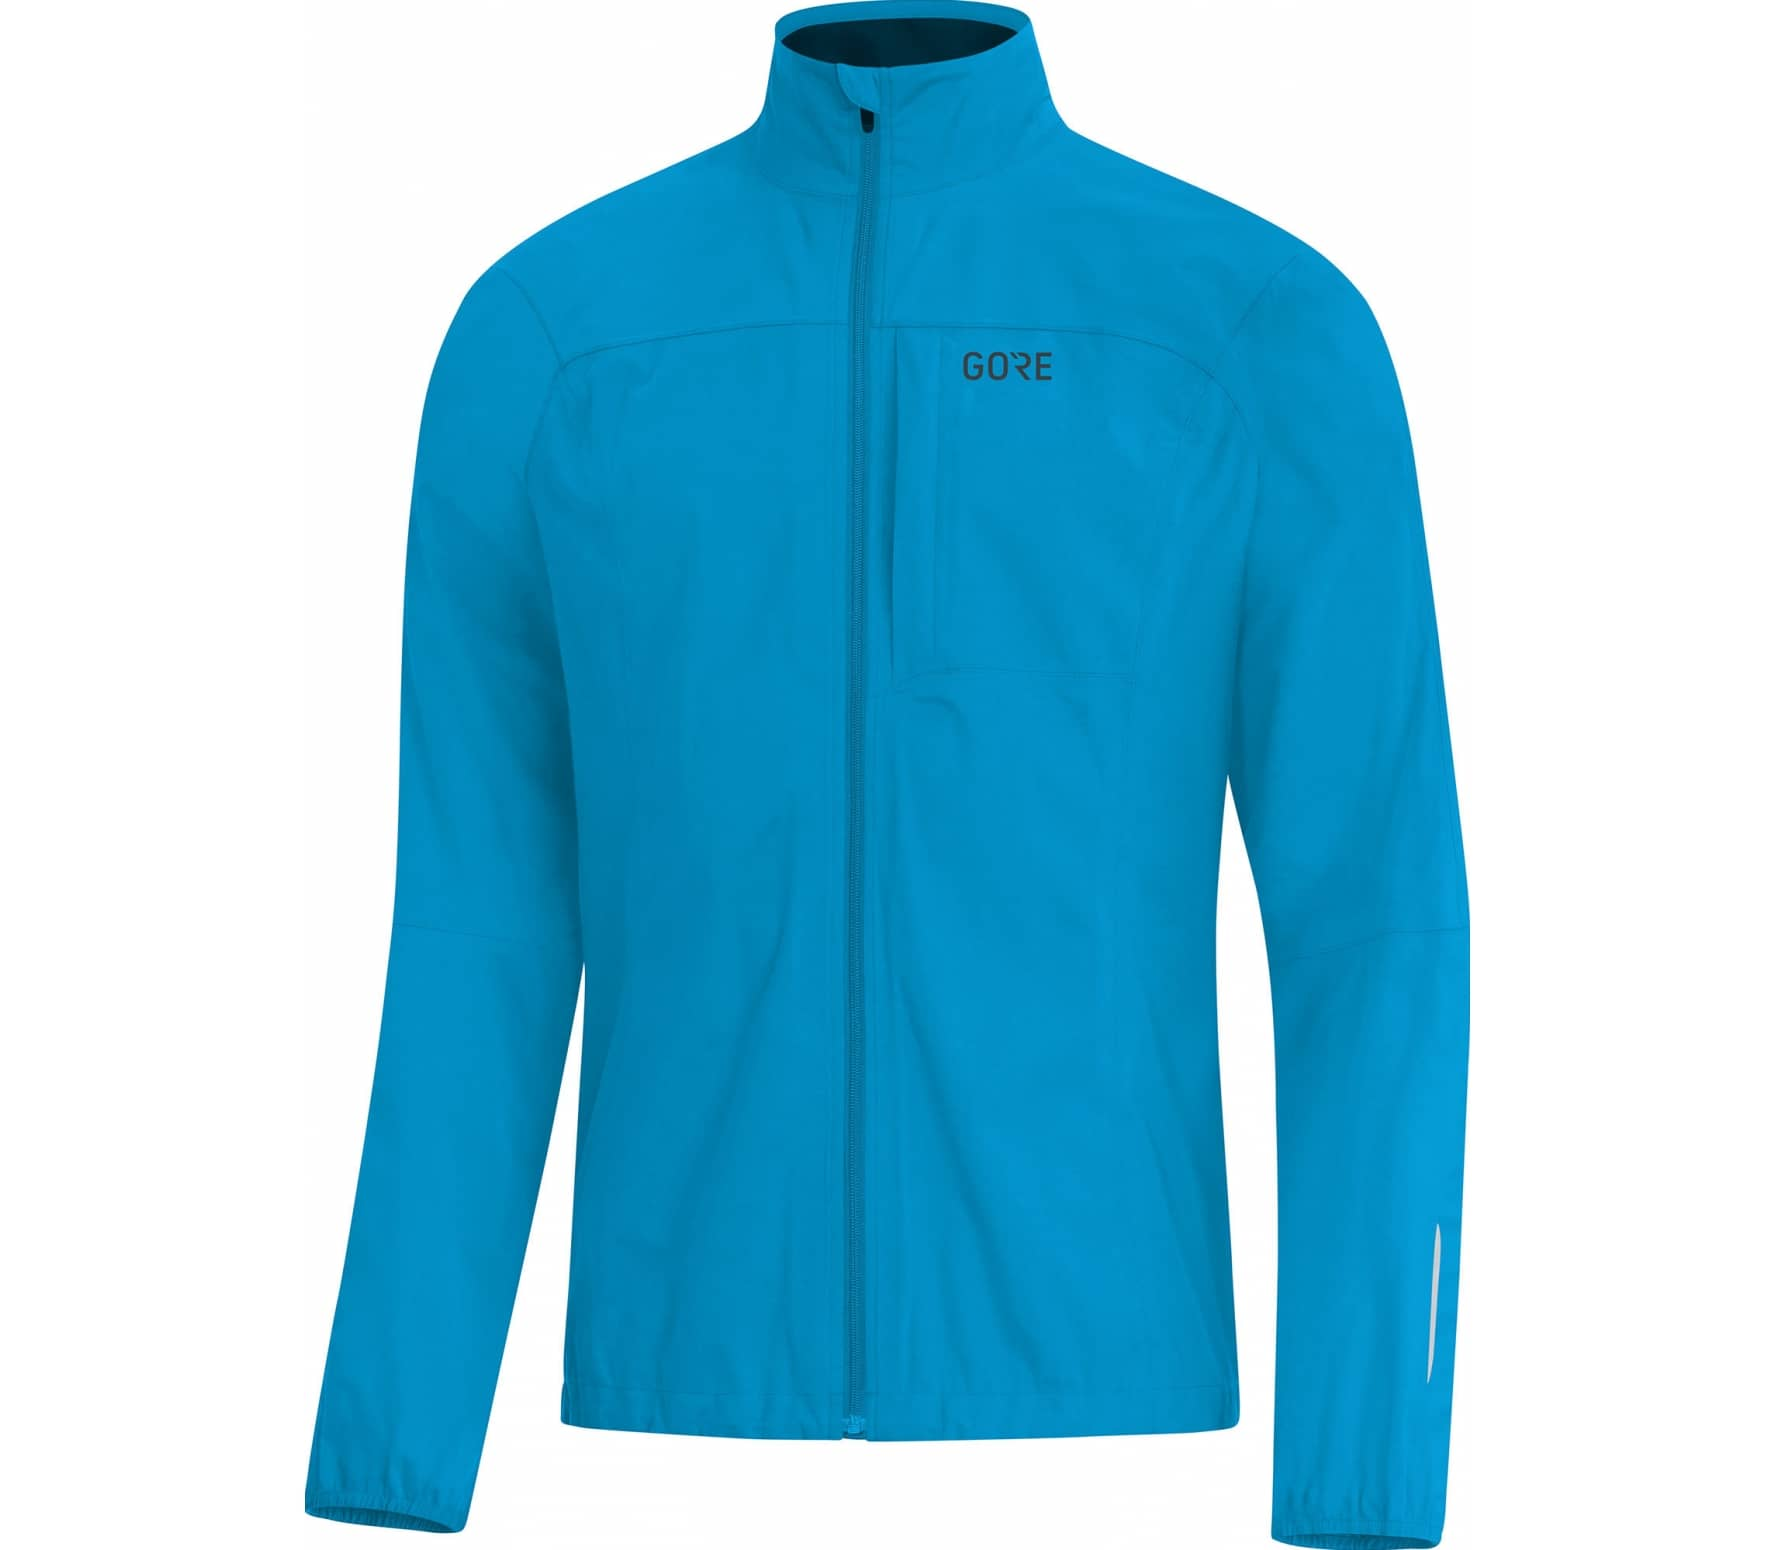 GORE® Wear - R3 GTX Active men's running jacket (blue) - S thumbnail